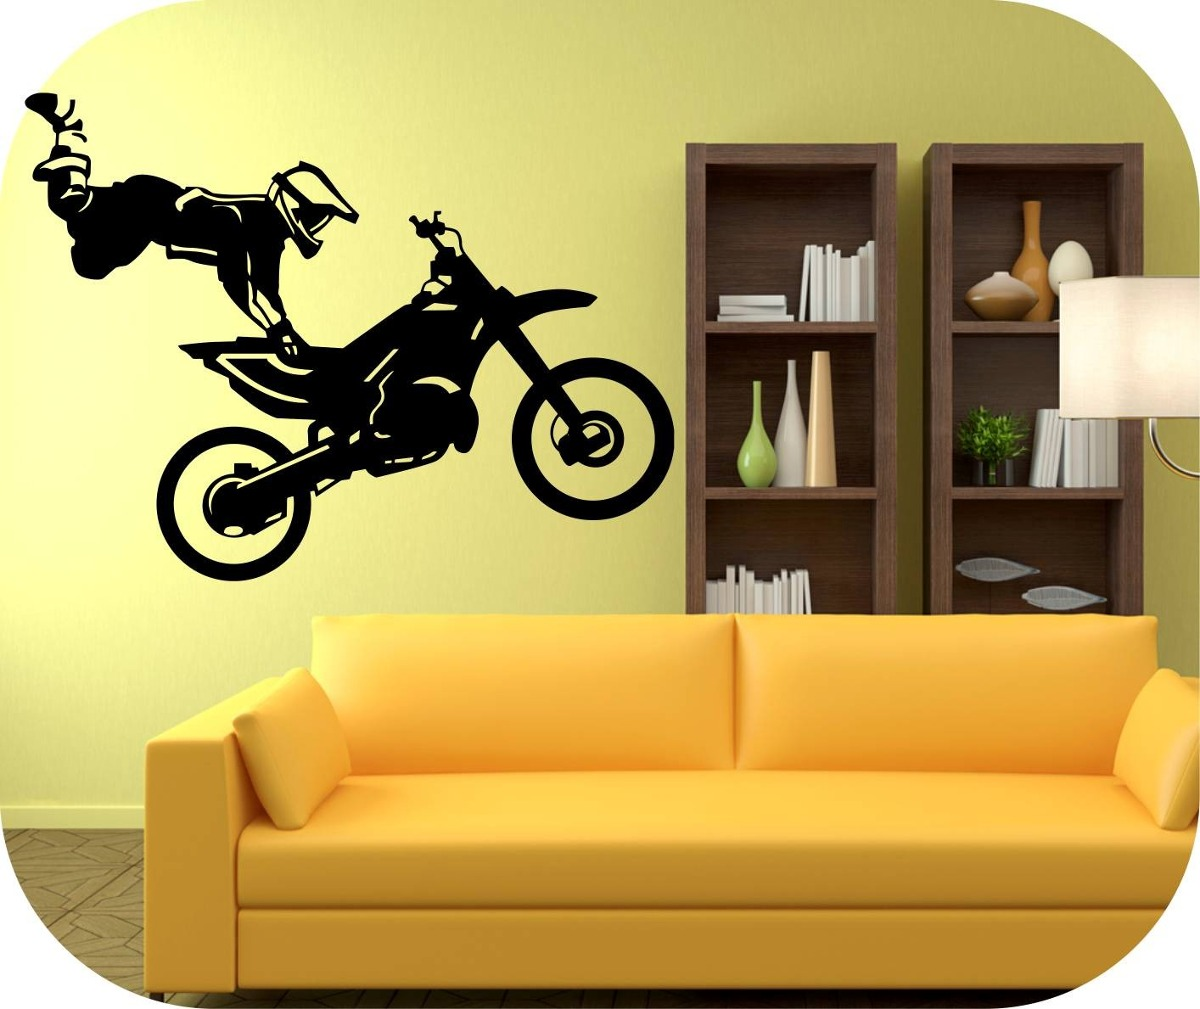 Vinilos decorativos motivo carros y motos decoracion paredes bs en mercado libre - Decoracion vinilos adhesivos ...